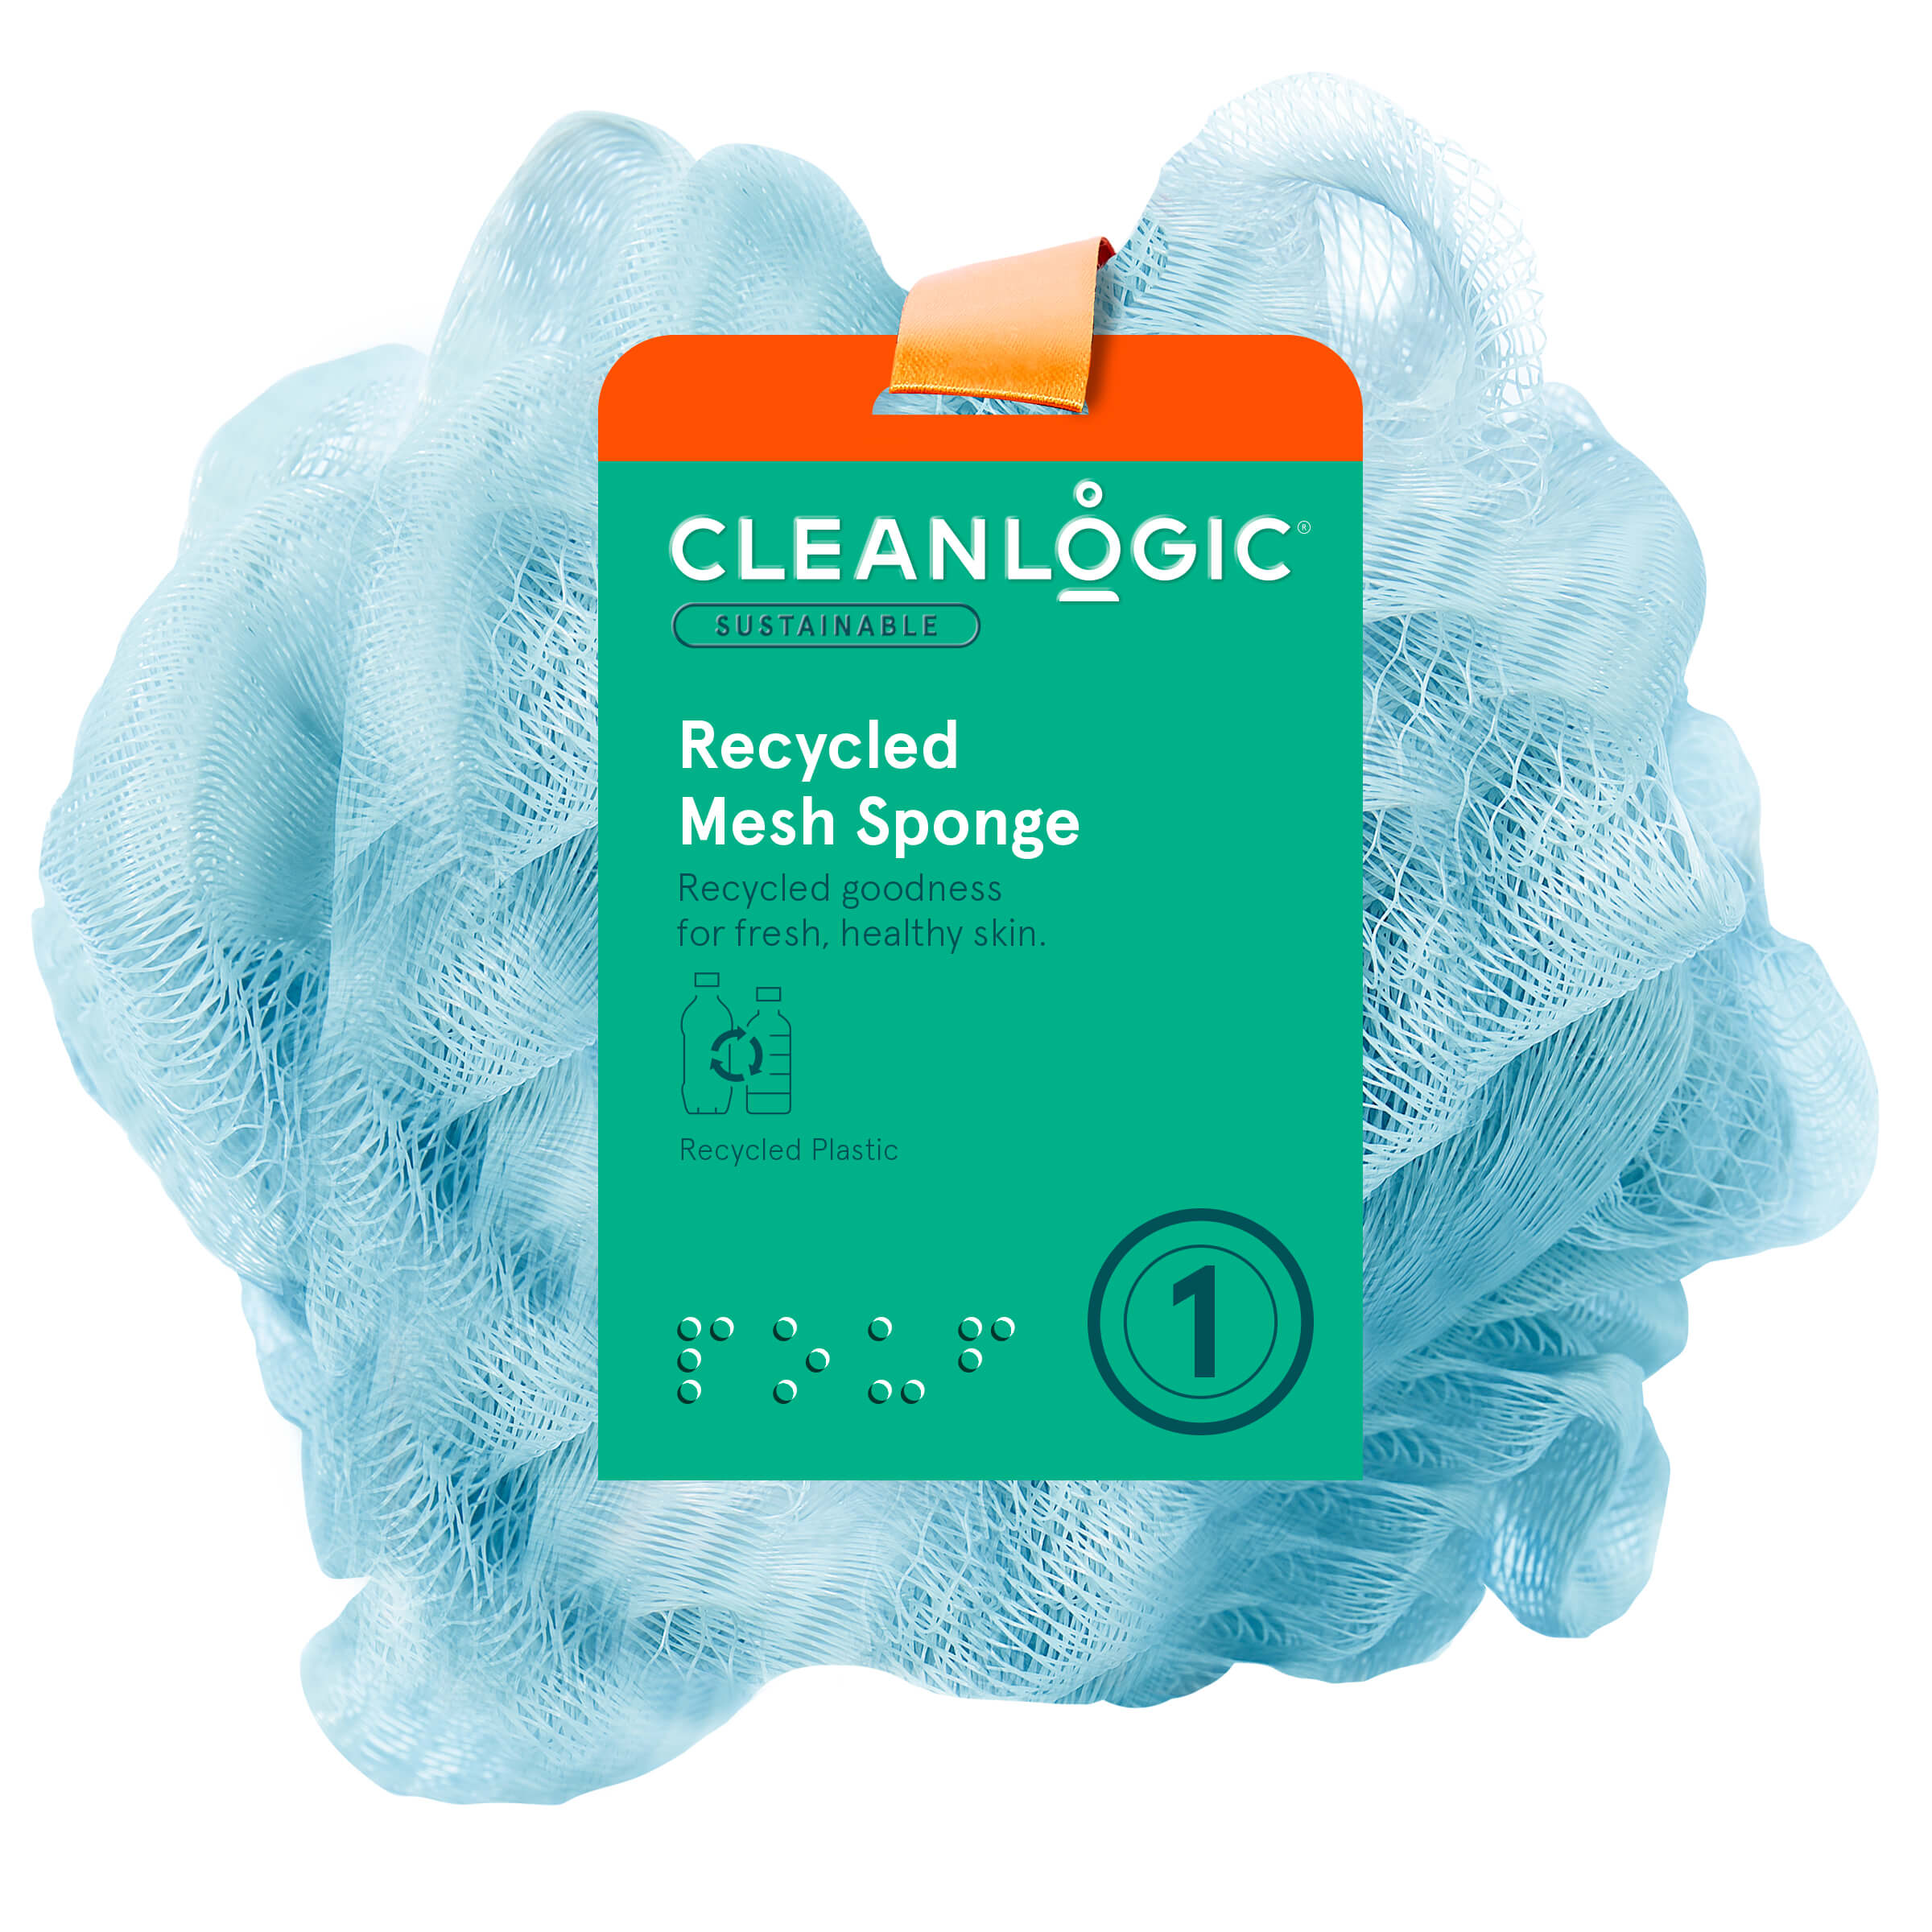 Cleanlogic Sustainable Recycled Mesh Sponge 60g